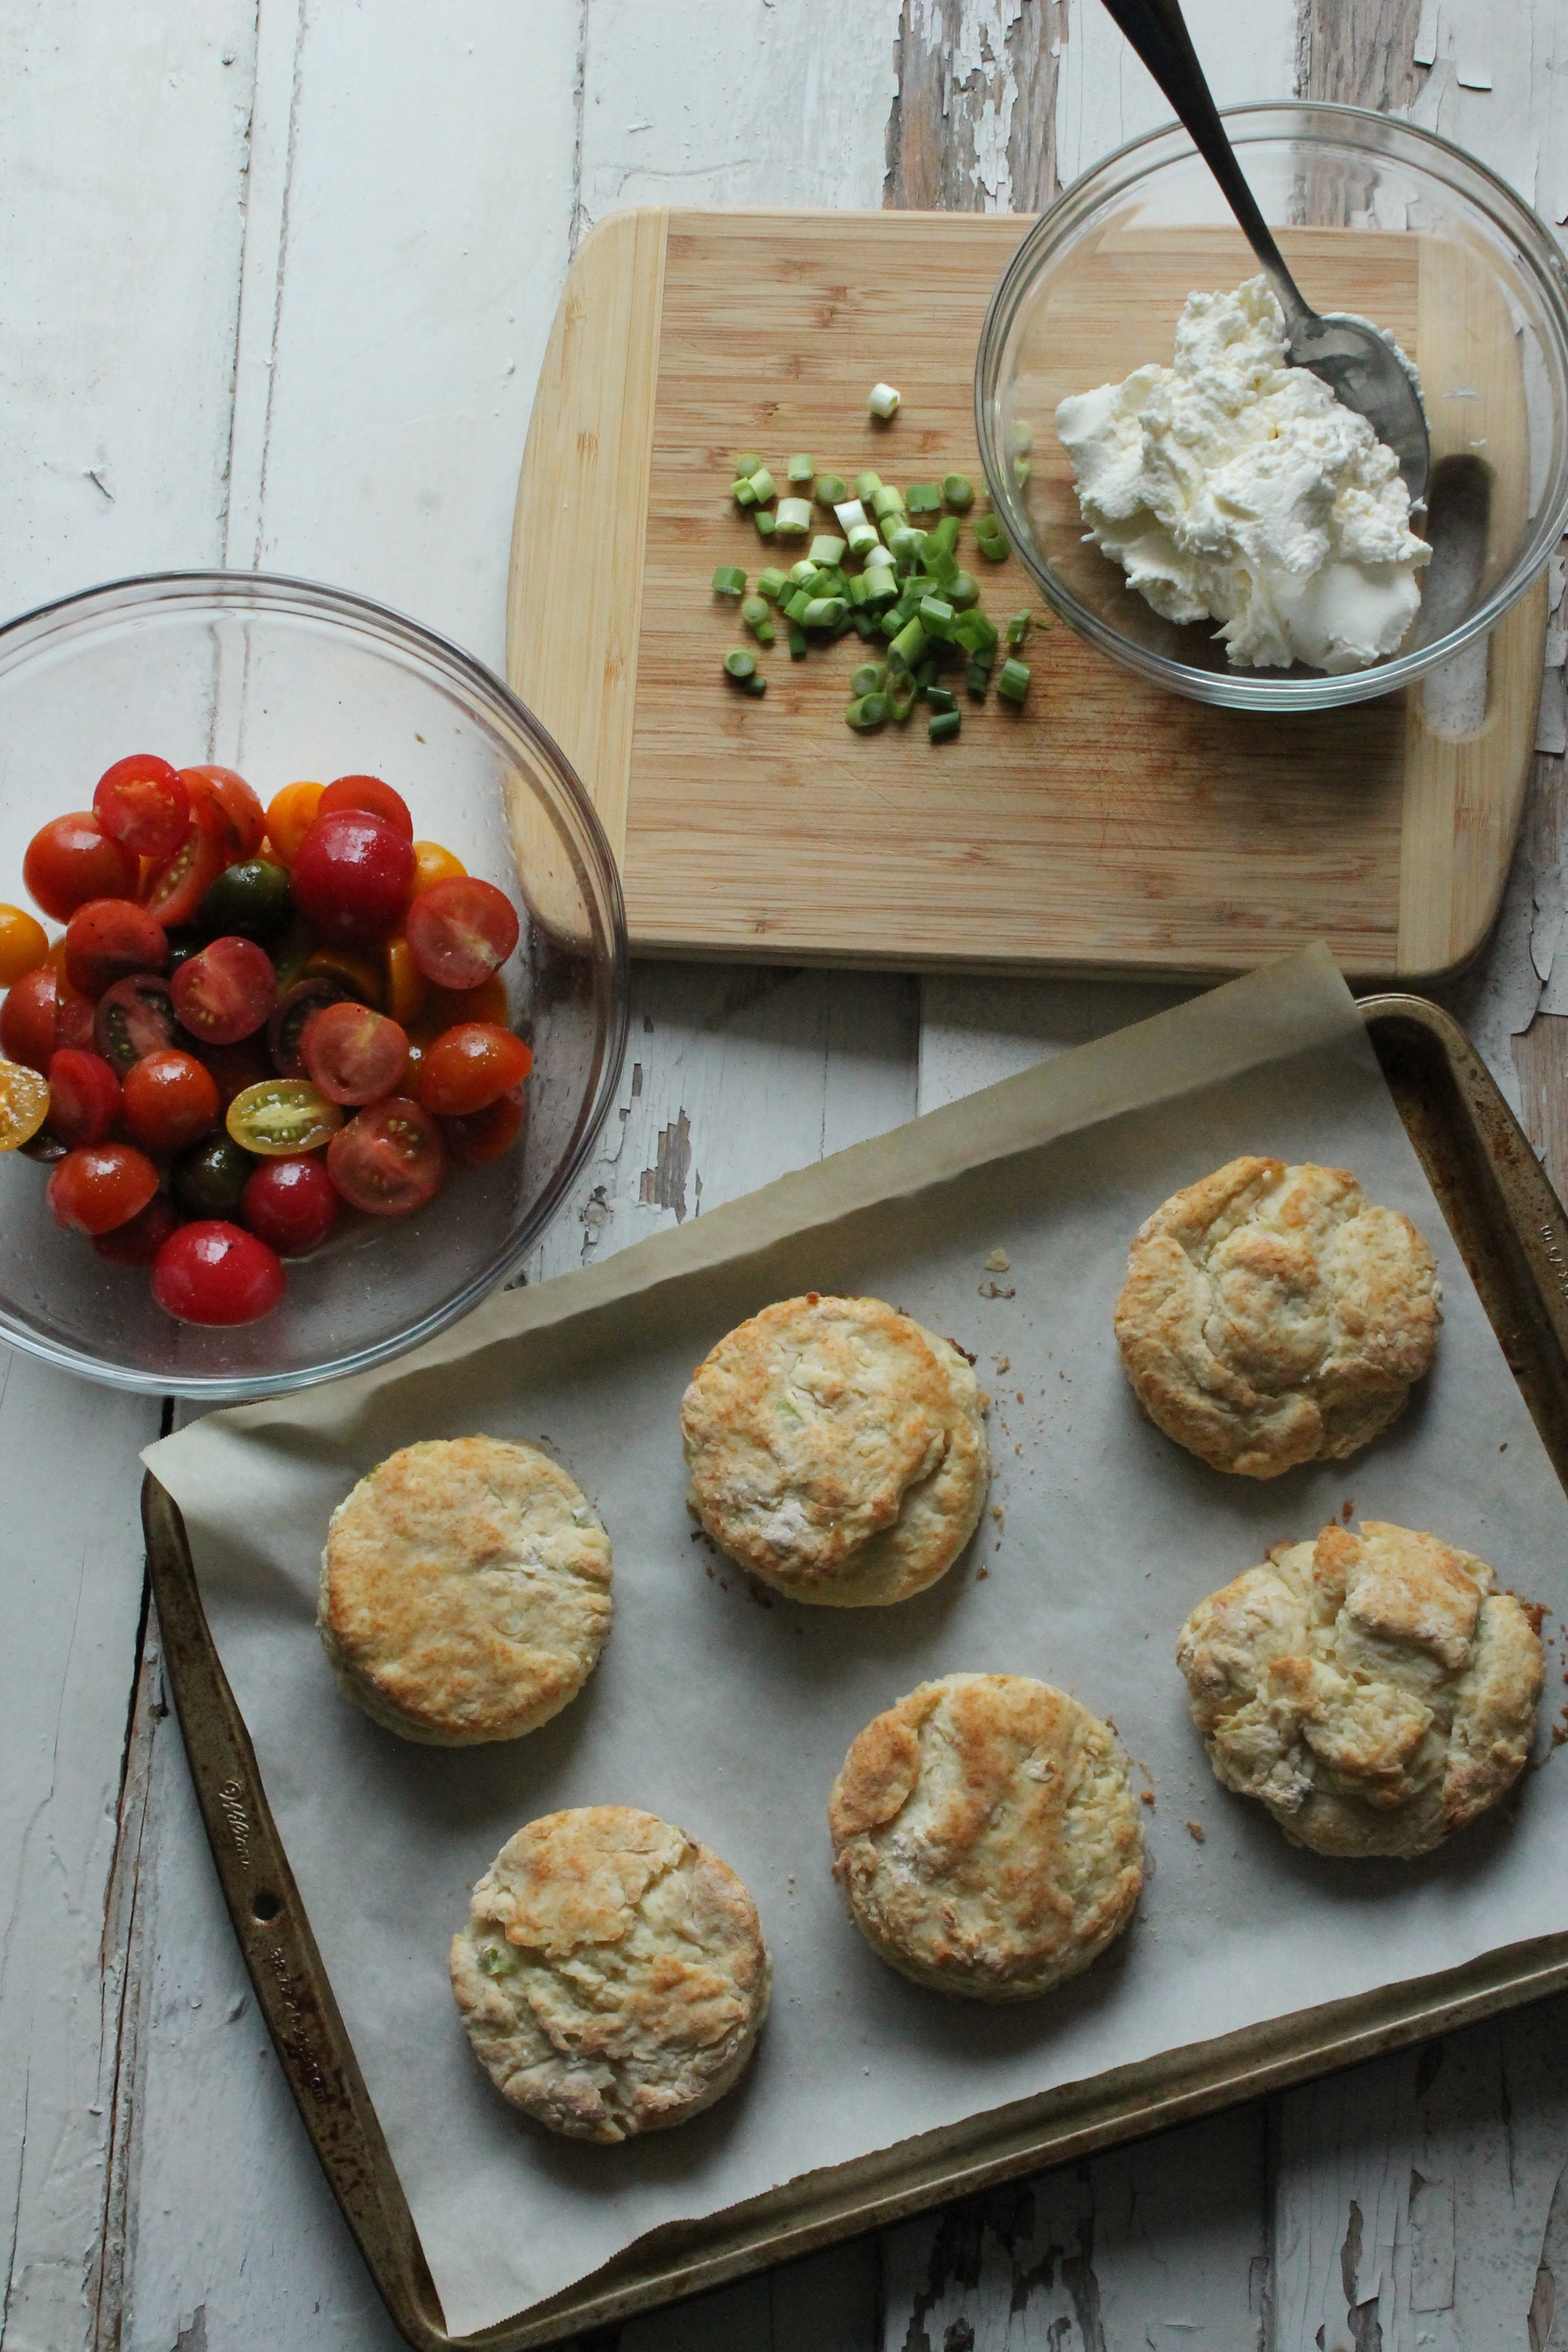 Smitten Kitchen Cookbook tomato scallion shortcakes with whipped goat cheese | stephie cooks